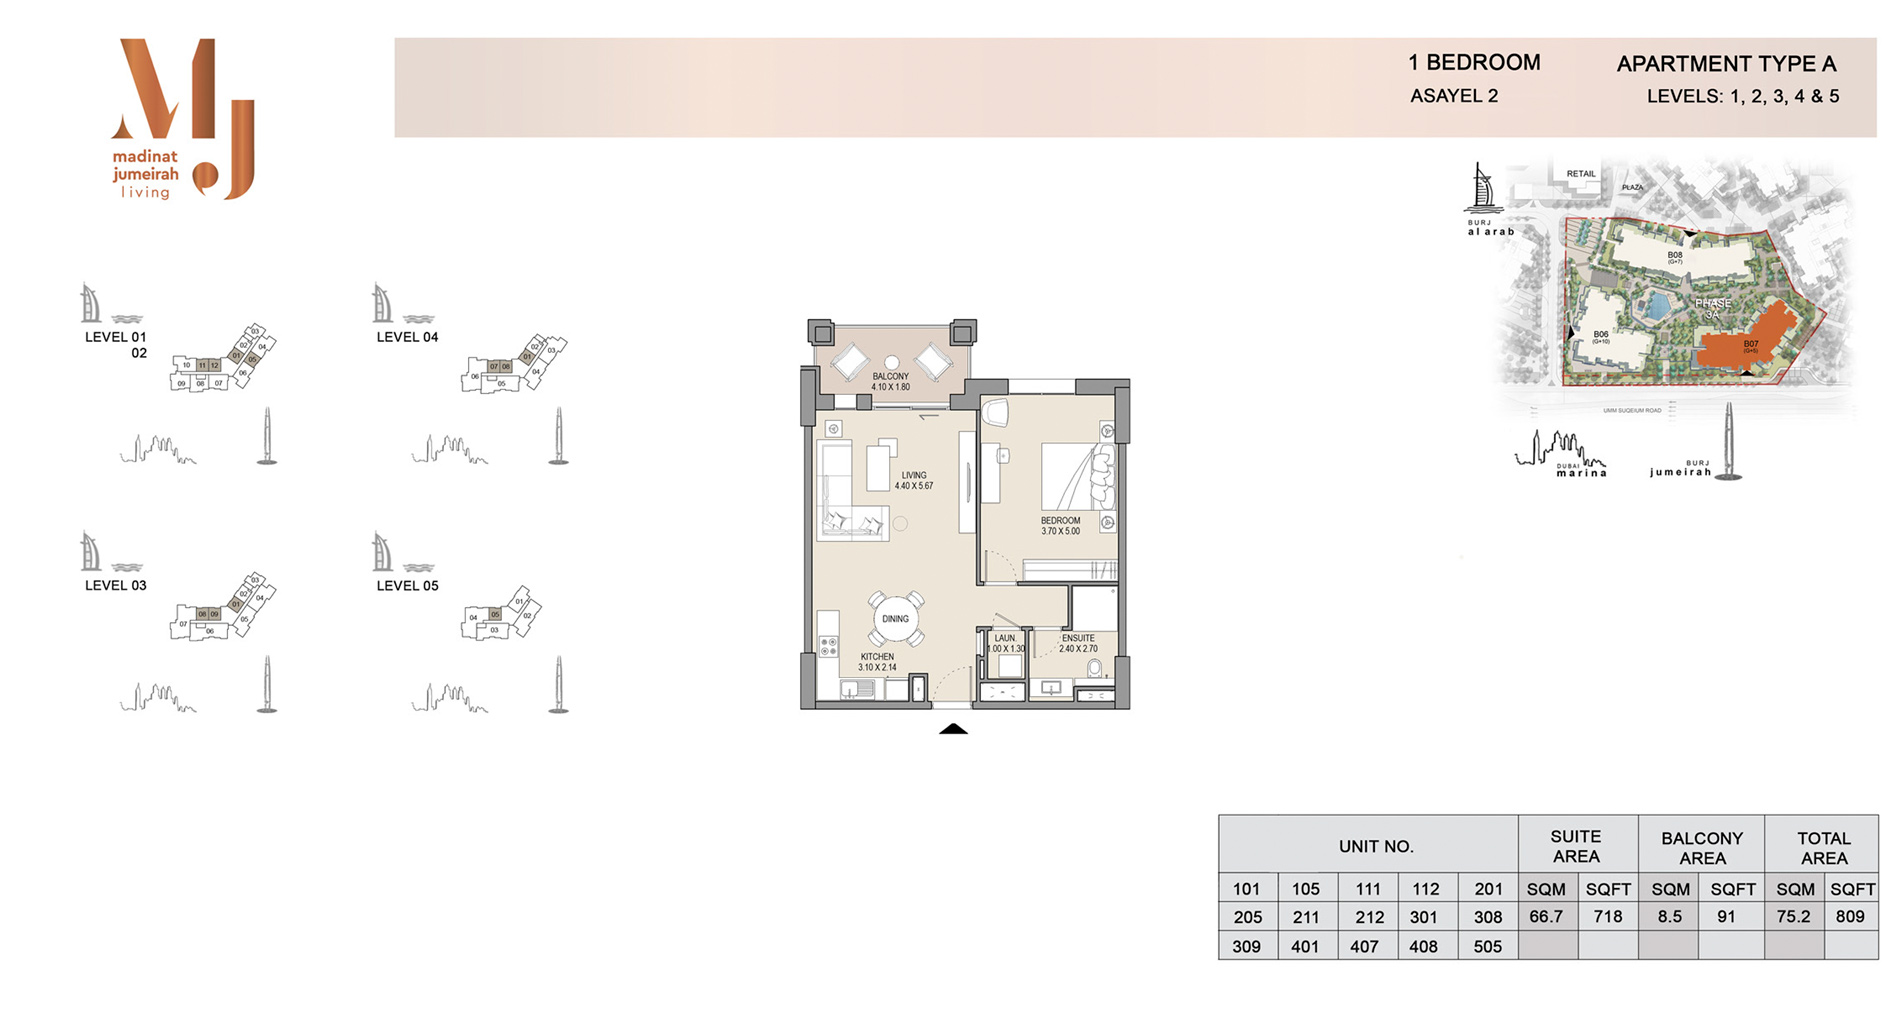 Building-2,-1 Bed Type A Level 1 to 5, Size 809    sq. ft.